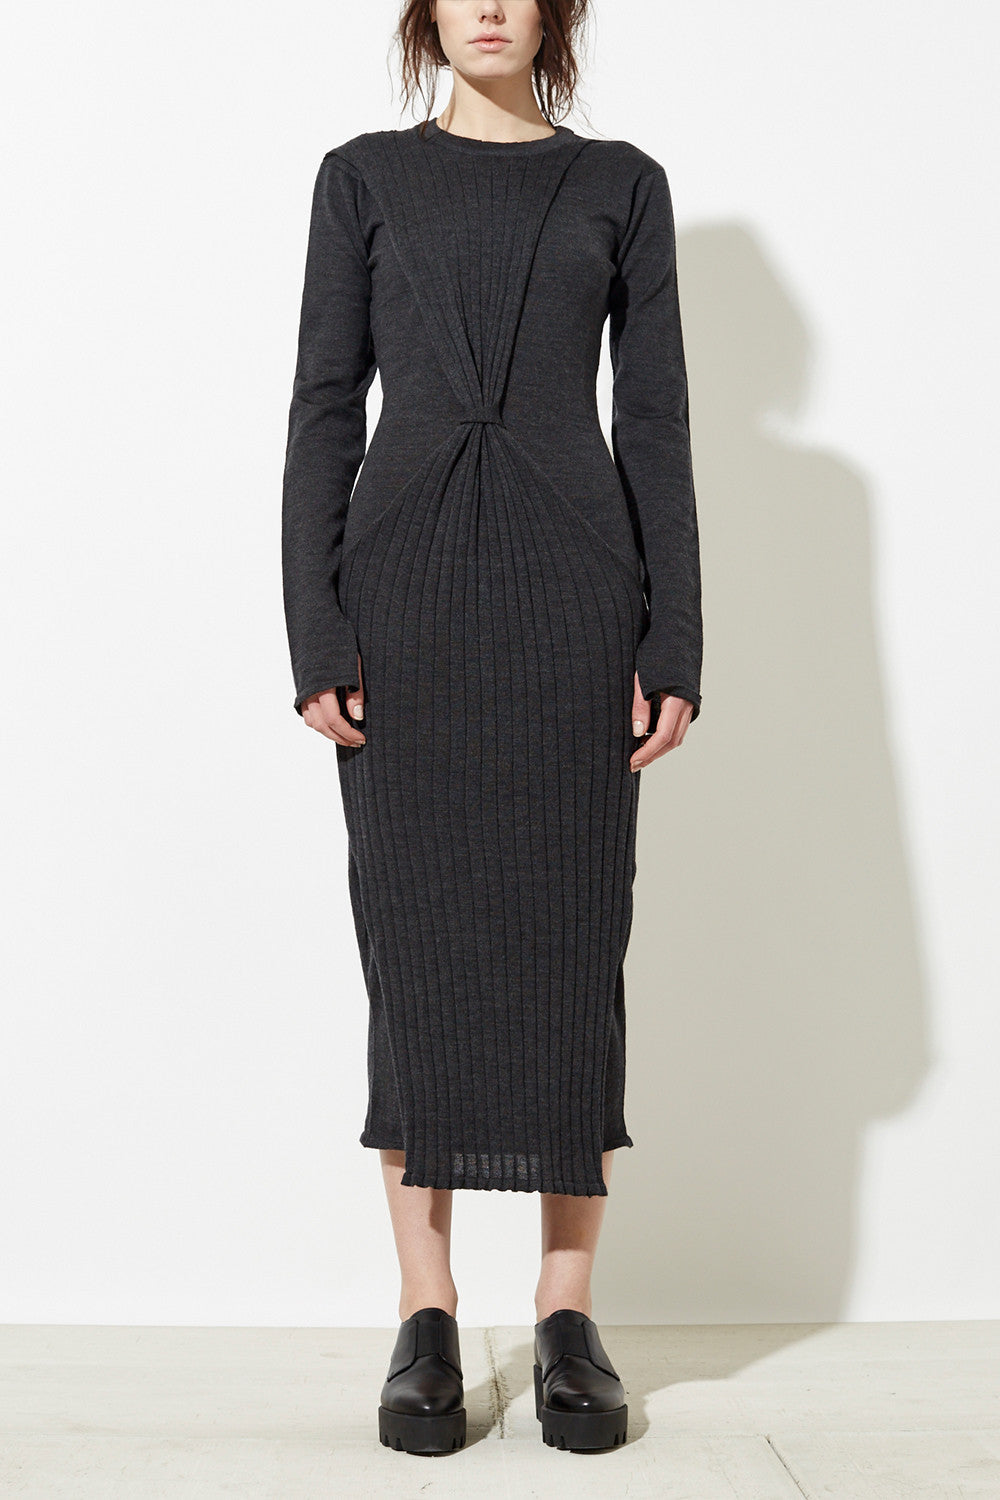 Han Knit Dress in Charcoal Grey